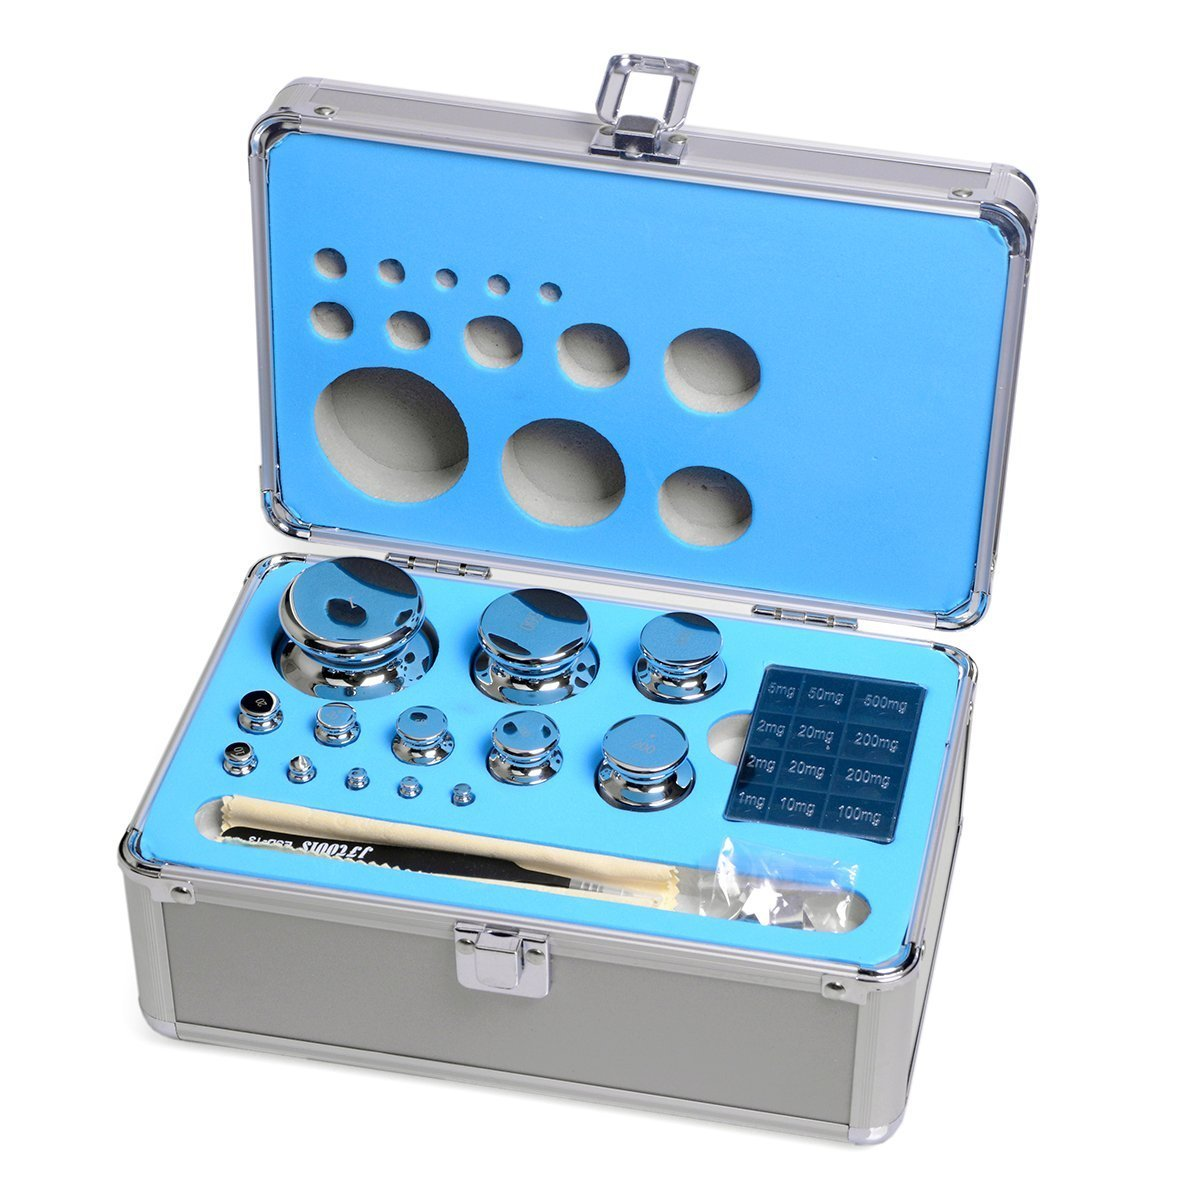 Image of Goetland 304 Stainless Steel Class F1 Calibration Weight Set 1 mg - 1 kg 25 pcs for Balance Scale Calibration Weights